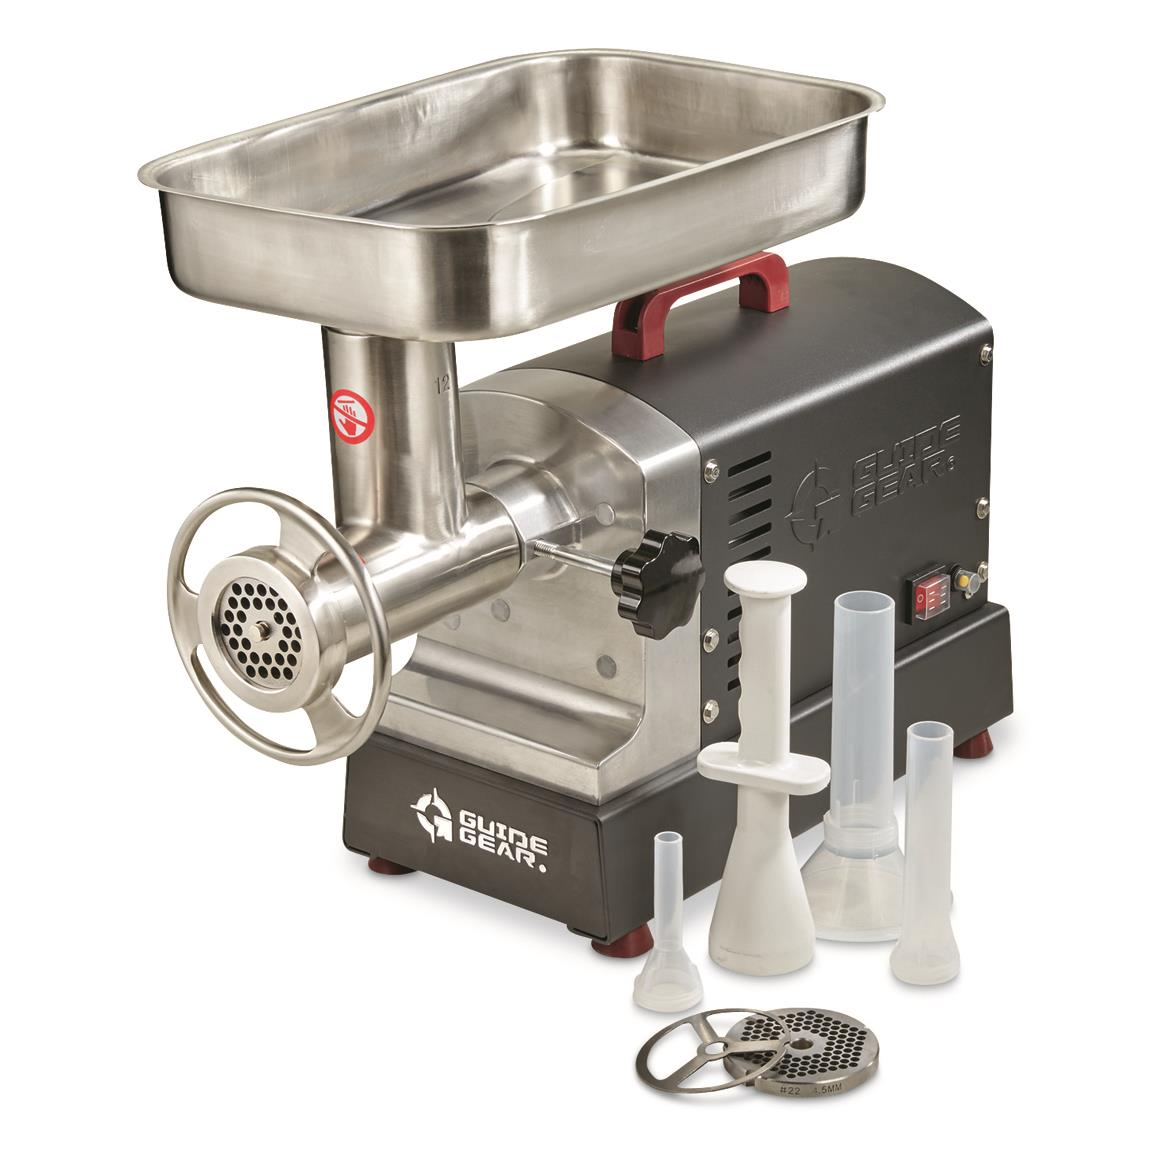 "Includes 3/16"" and 3/8"" grinding plates, food pusher and sausage stuffing tubes"